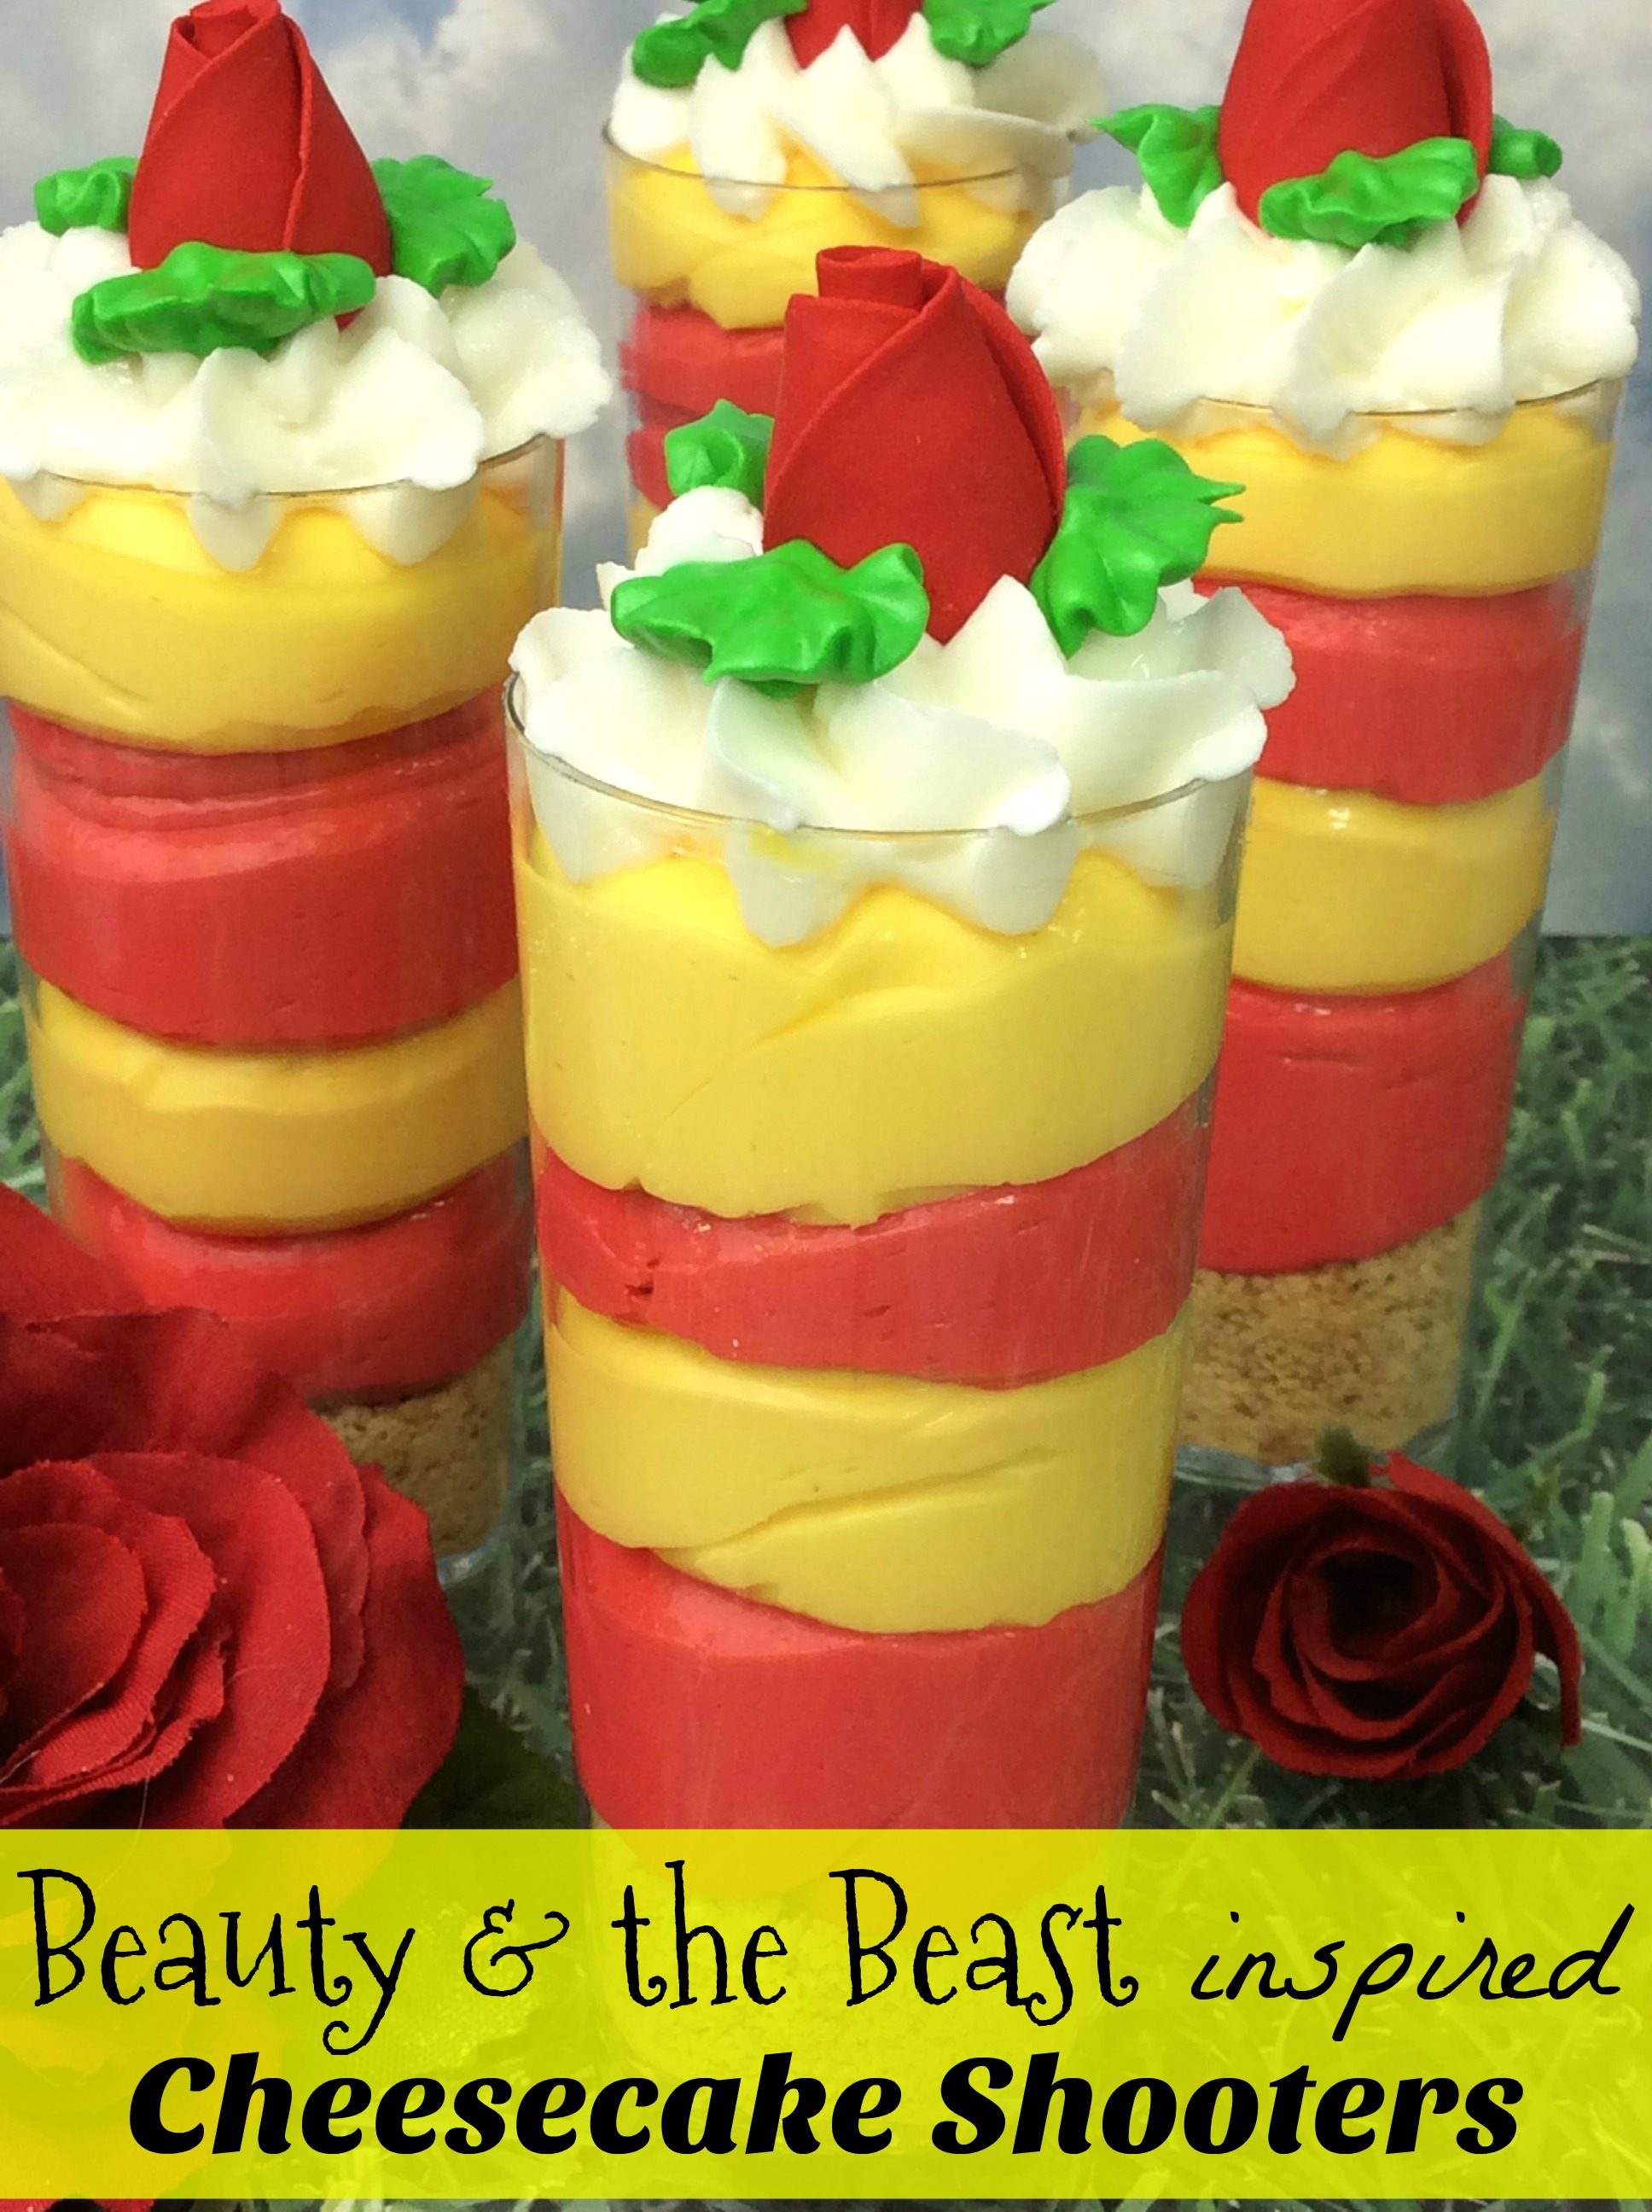 Beauty and the Beast inspired Cheesecake Shooters Recipe